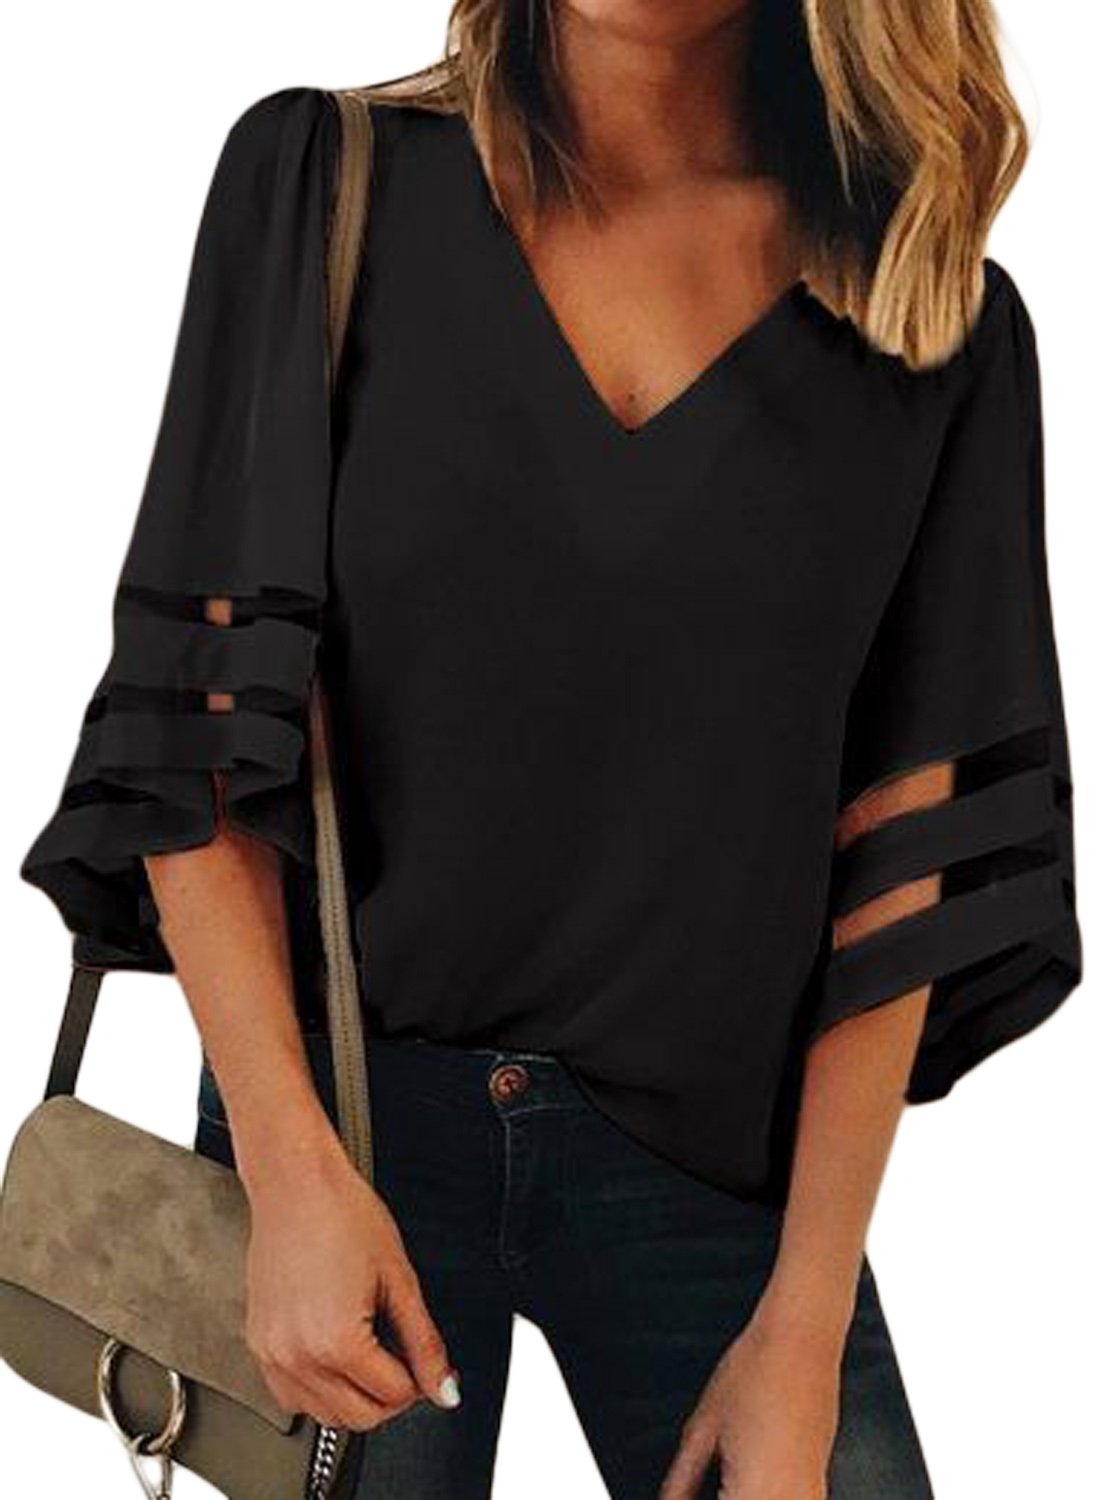 LOSRLY Women Mesh Patchwork V Neck Shirts 3/4 Bell Sleeve Casual Blouses and Tops-Black M 8 10